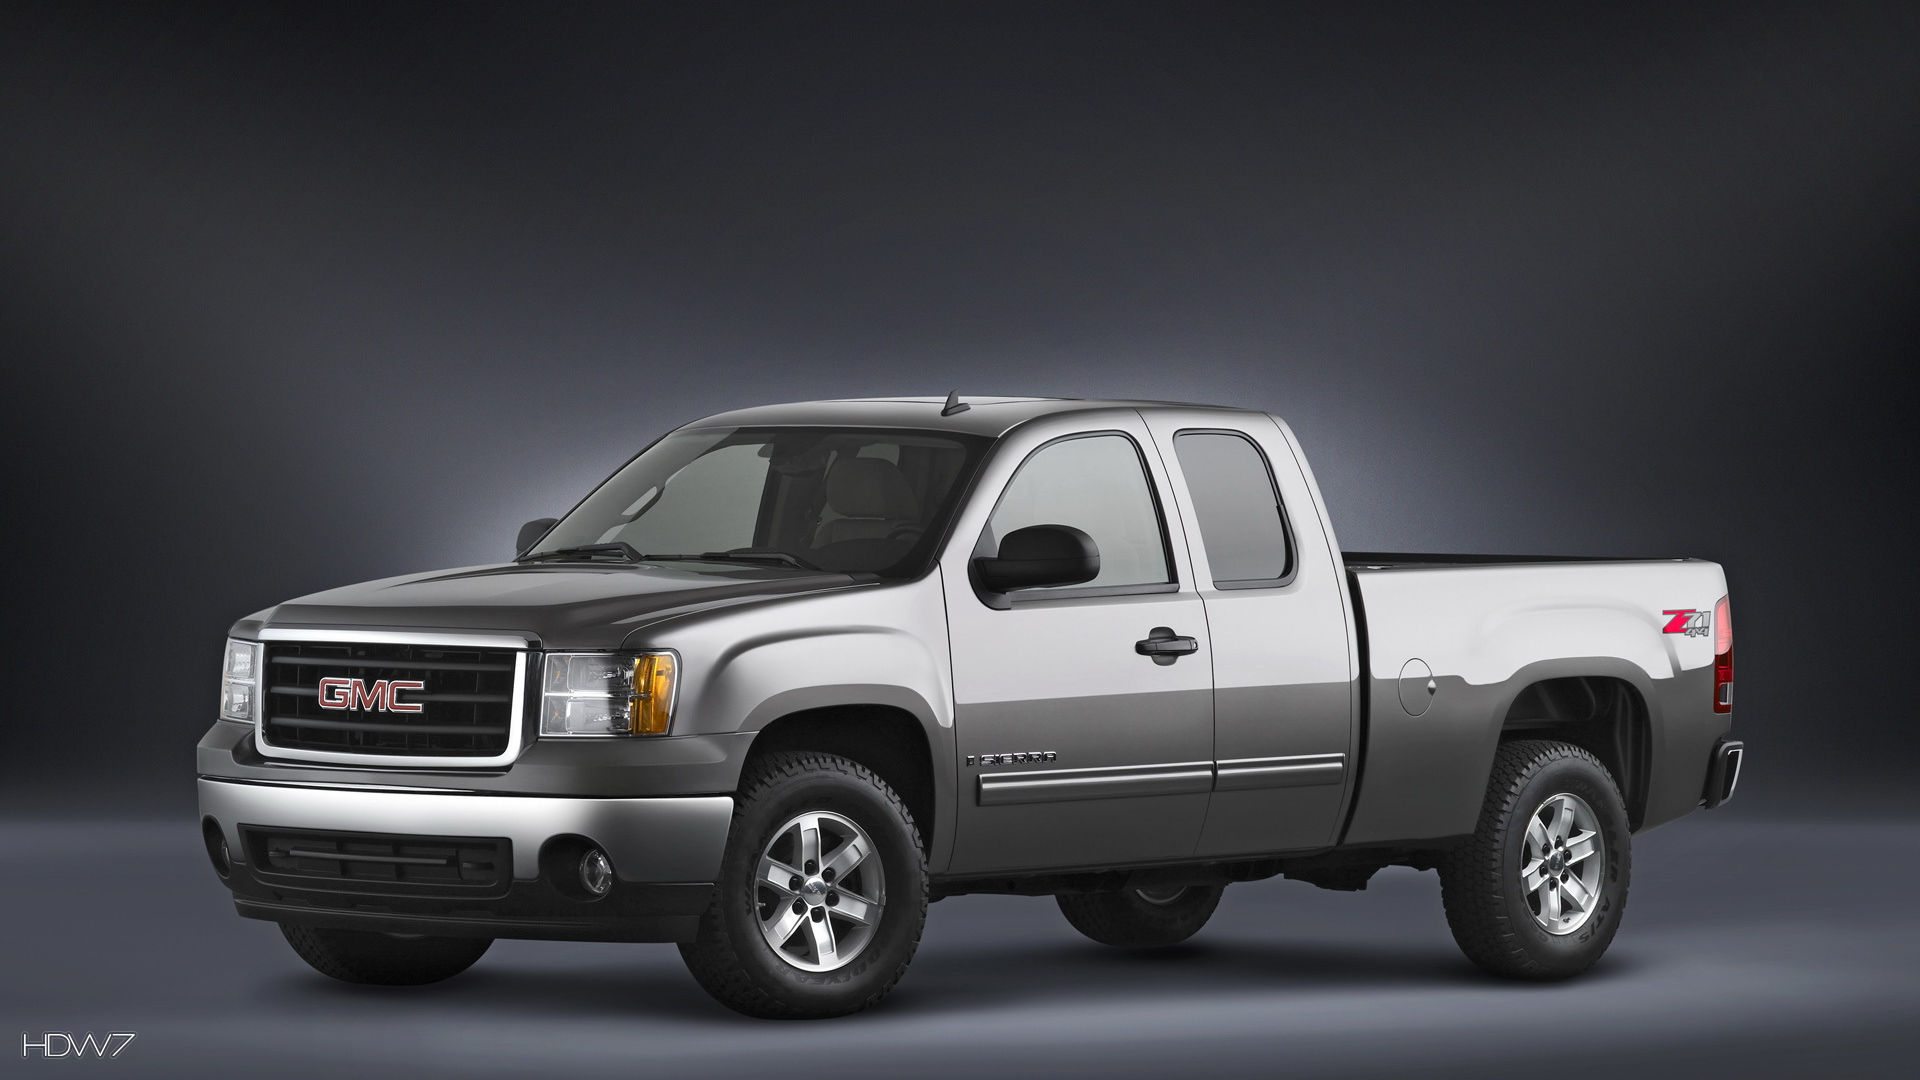 gmc sierra z71 extended cab 2008 car hd wallpaper